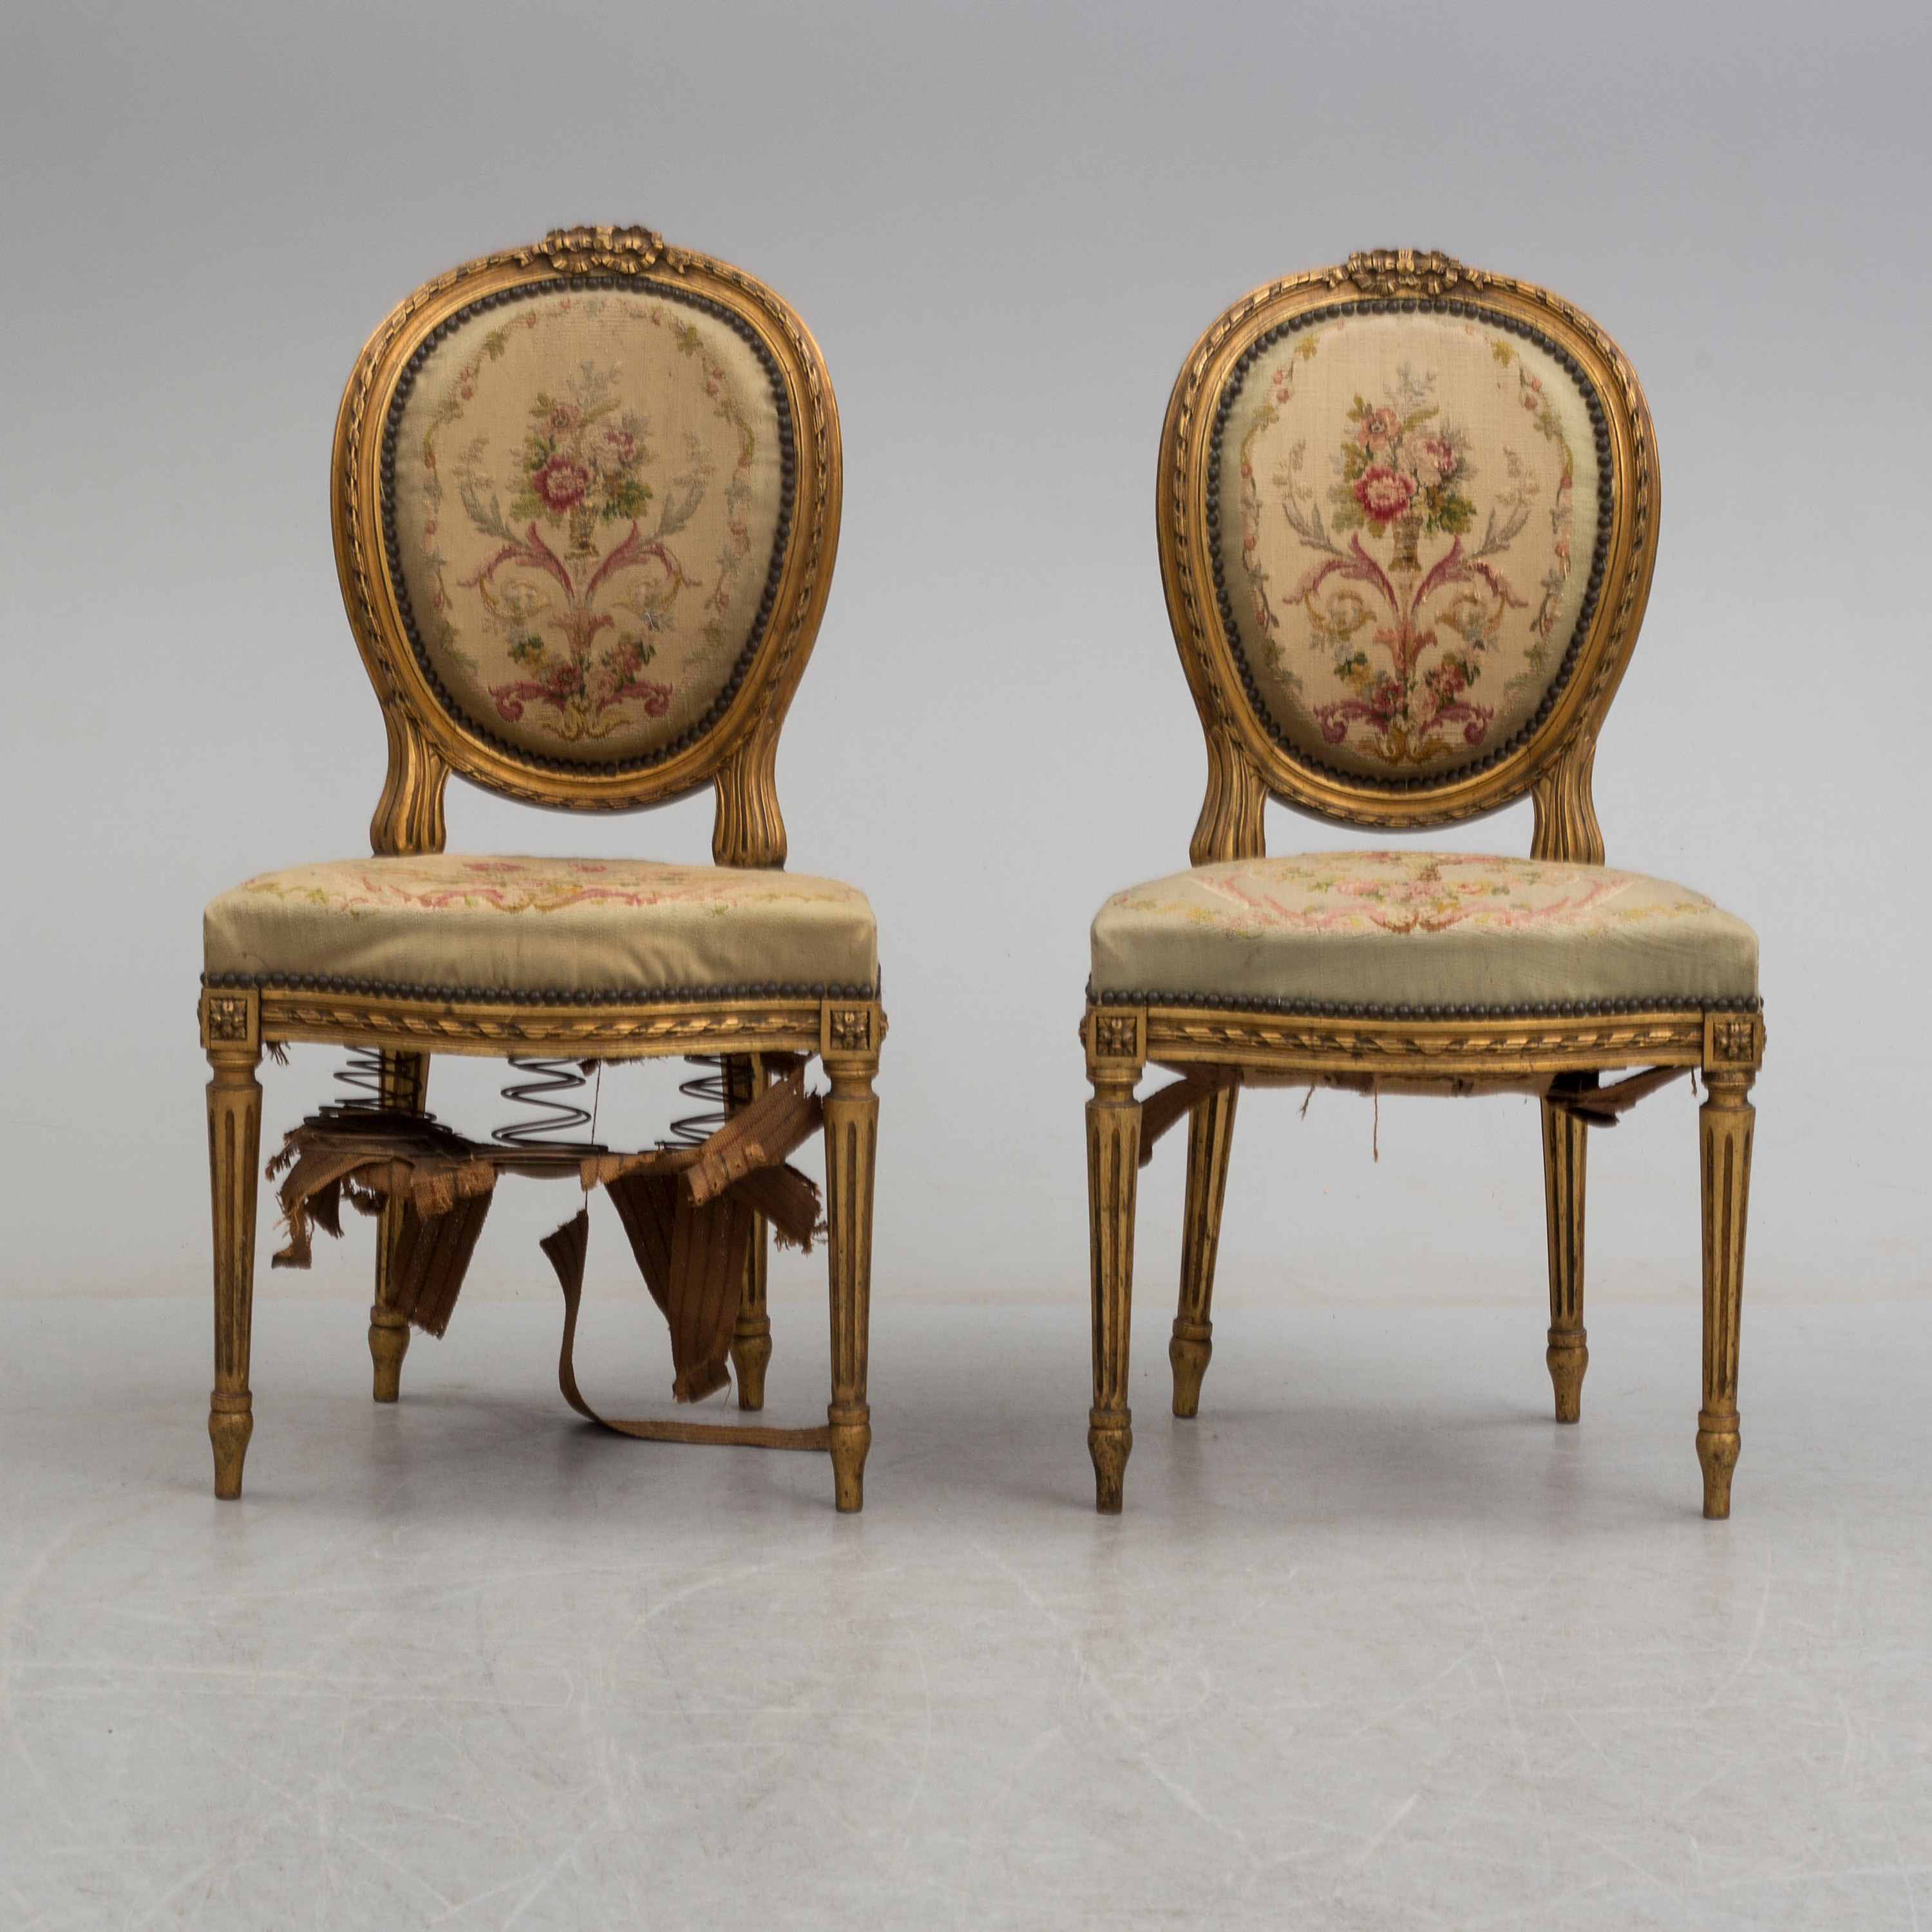 Good Two Unique Chairs In Louis Xvi Style Antiques Antiques